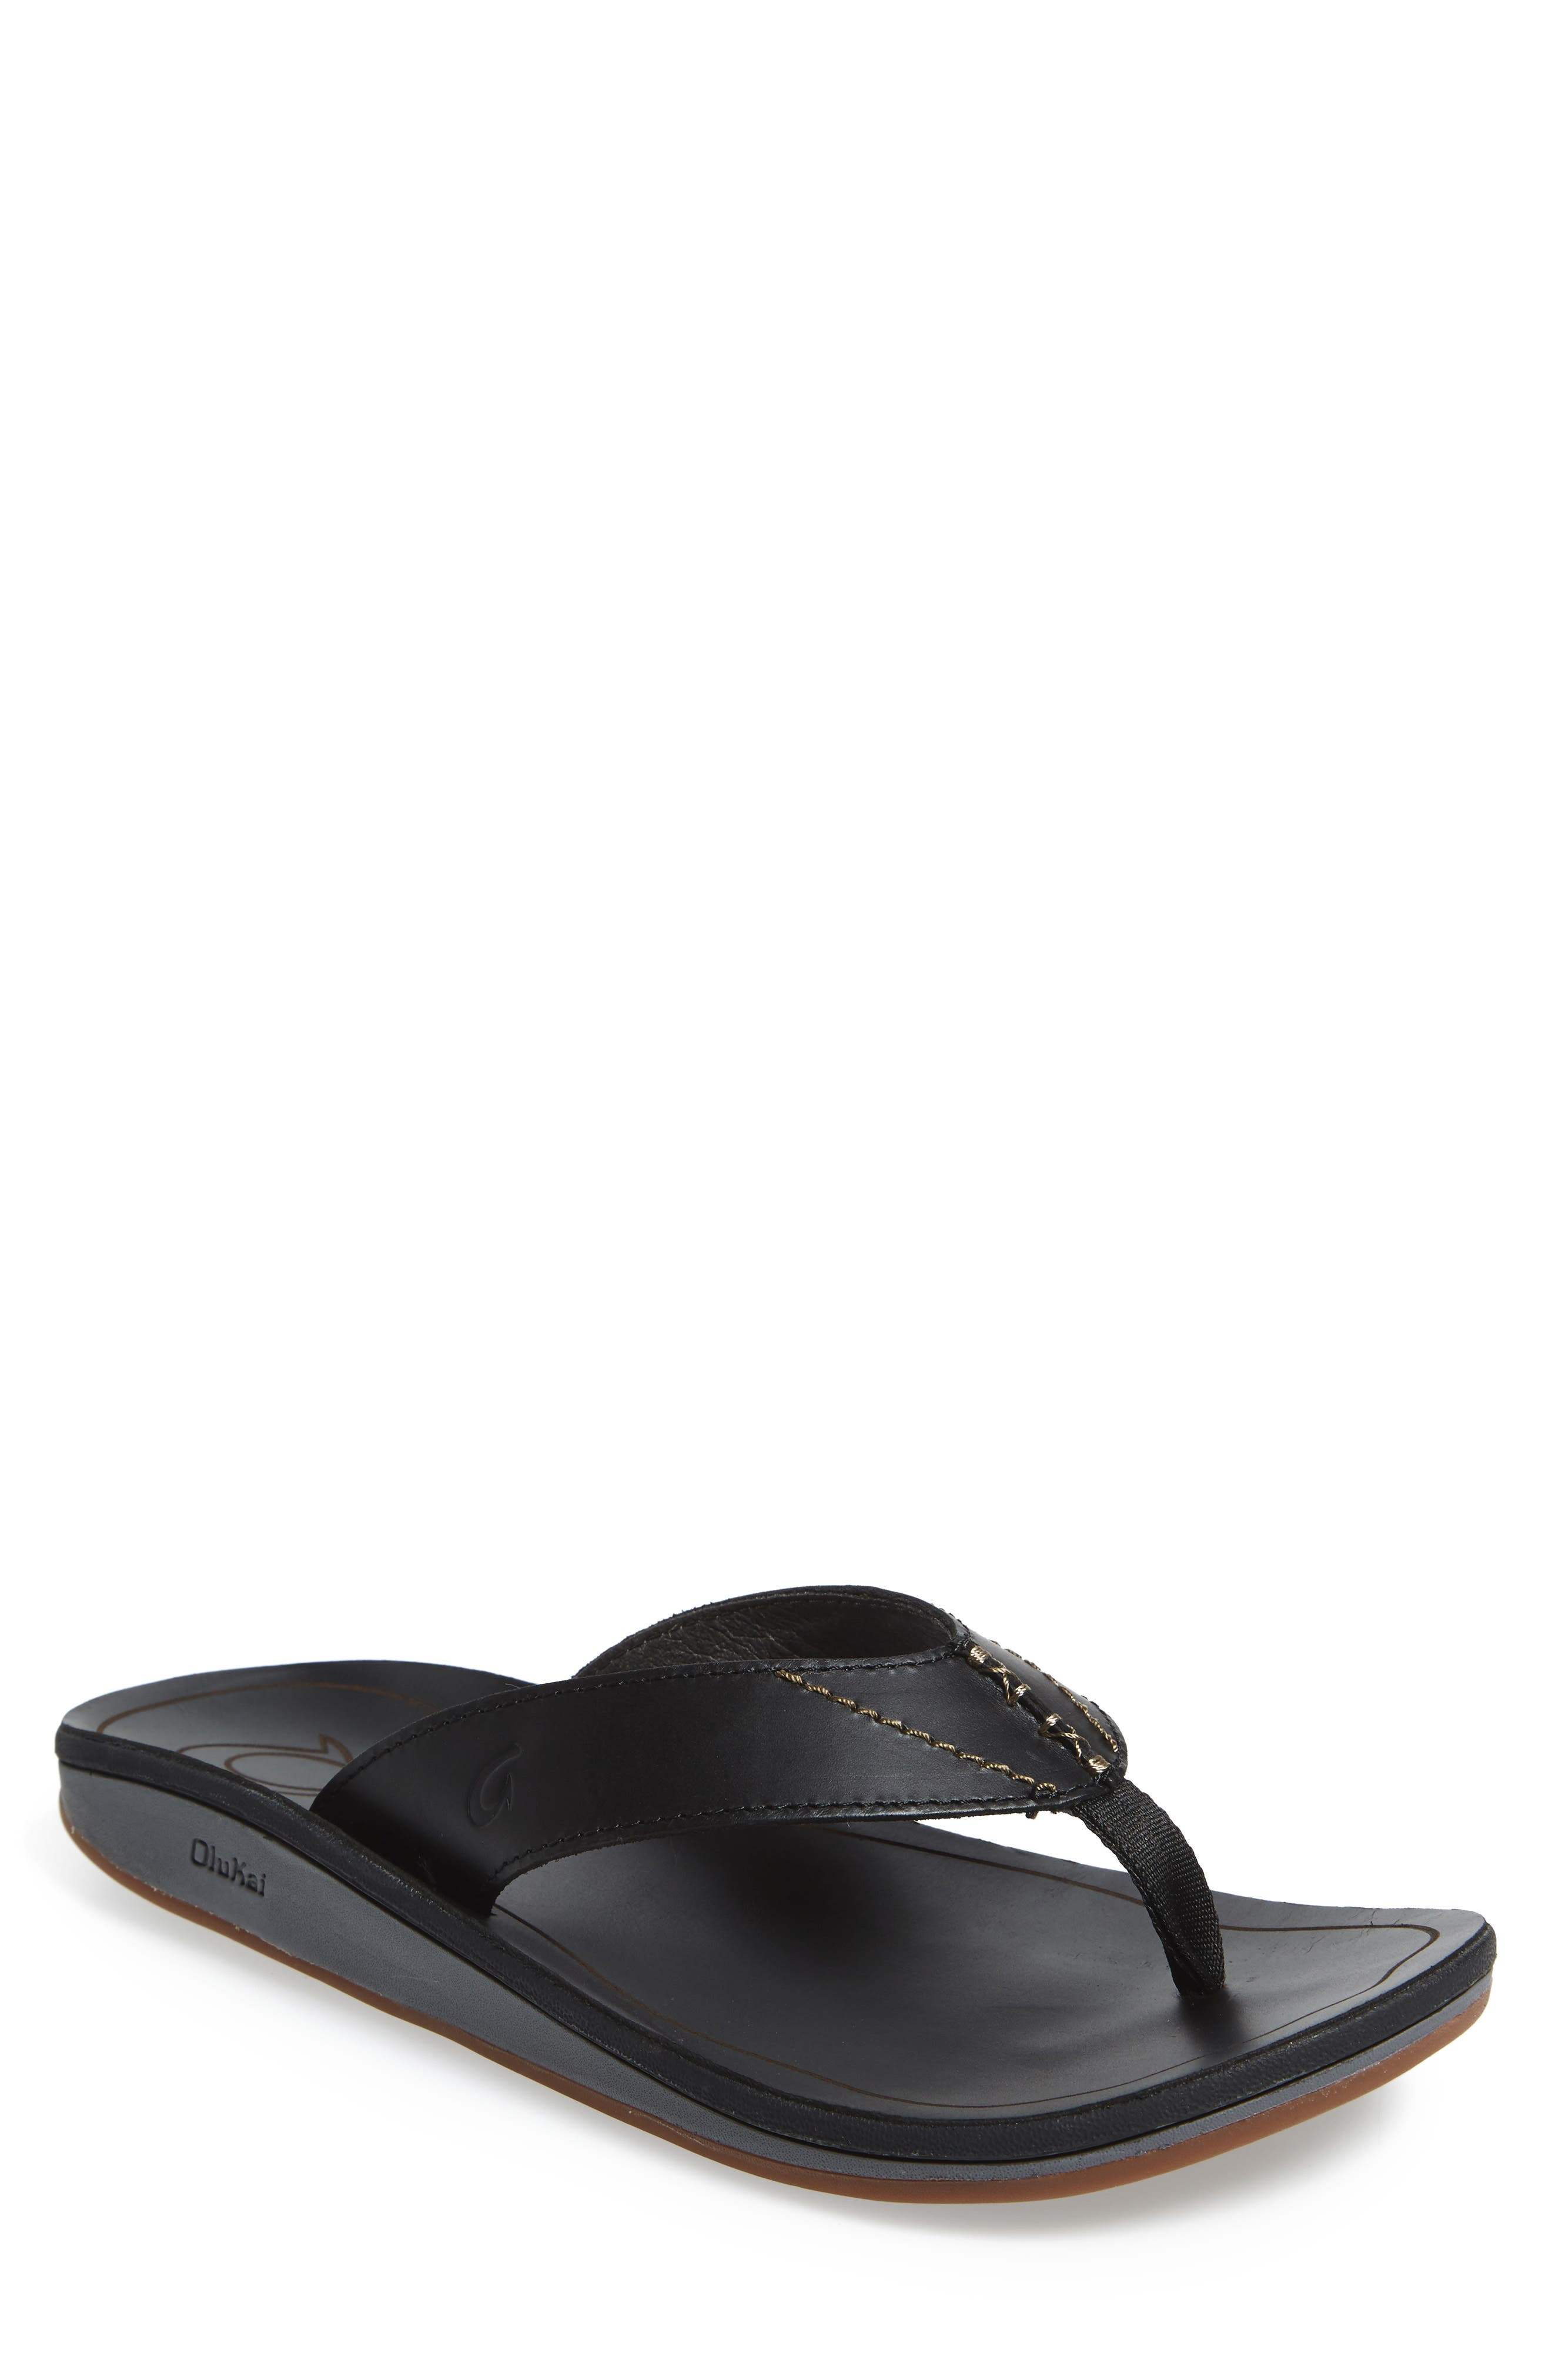 OLUKAI Nohona Ili Flip Flop, Main, color, BLACK/ BLACK LEATHER